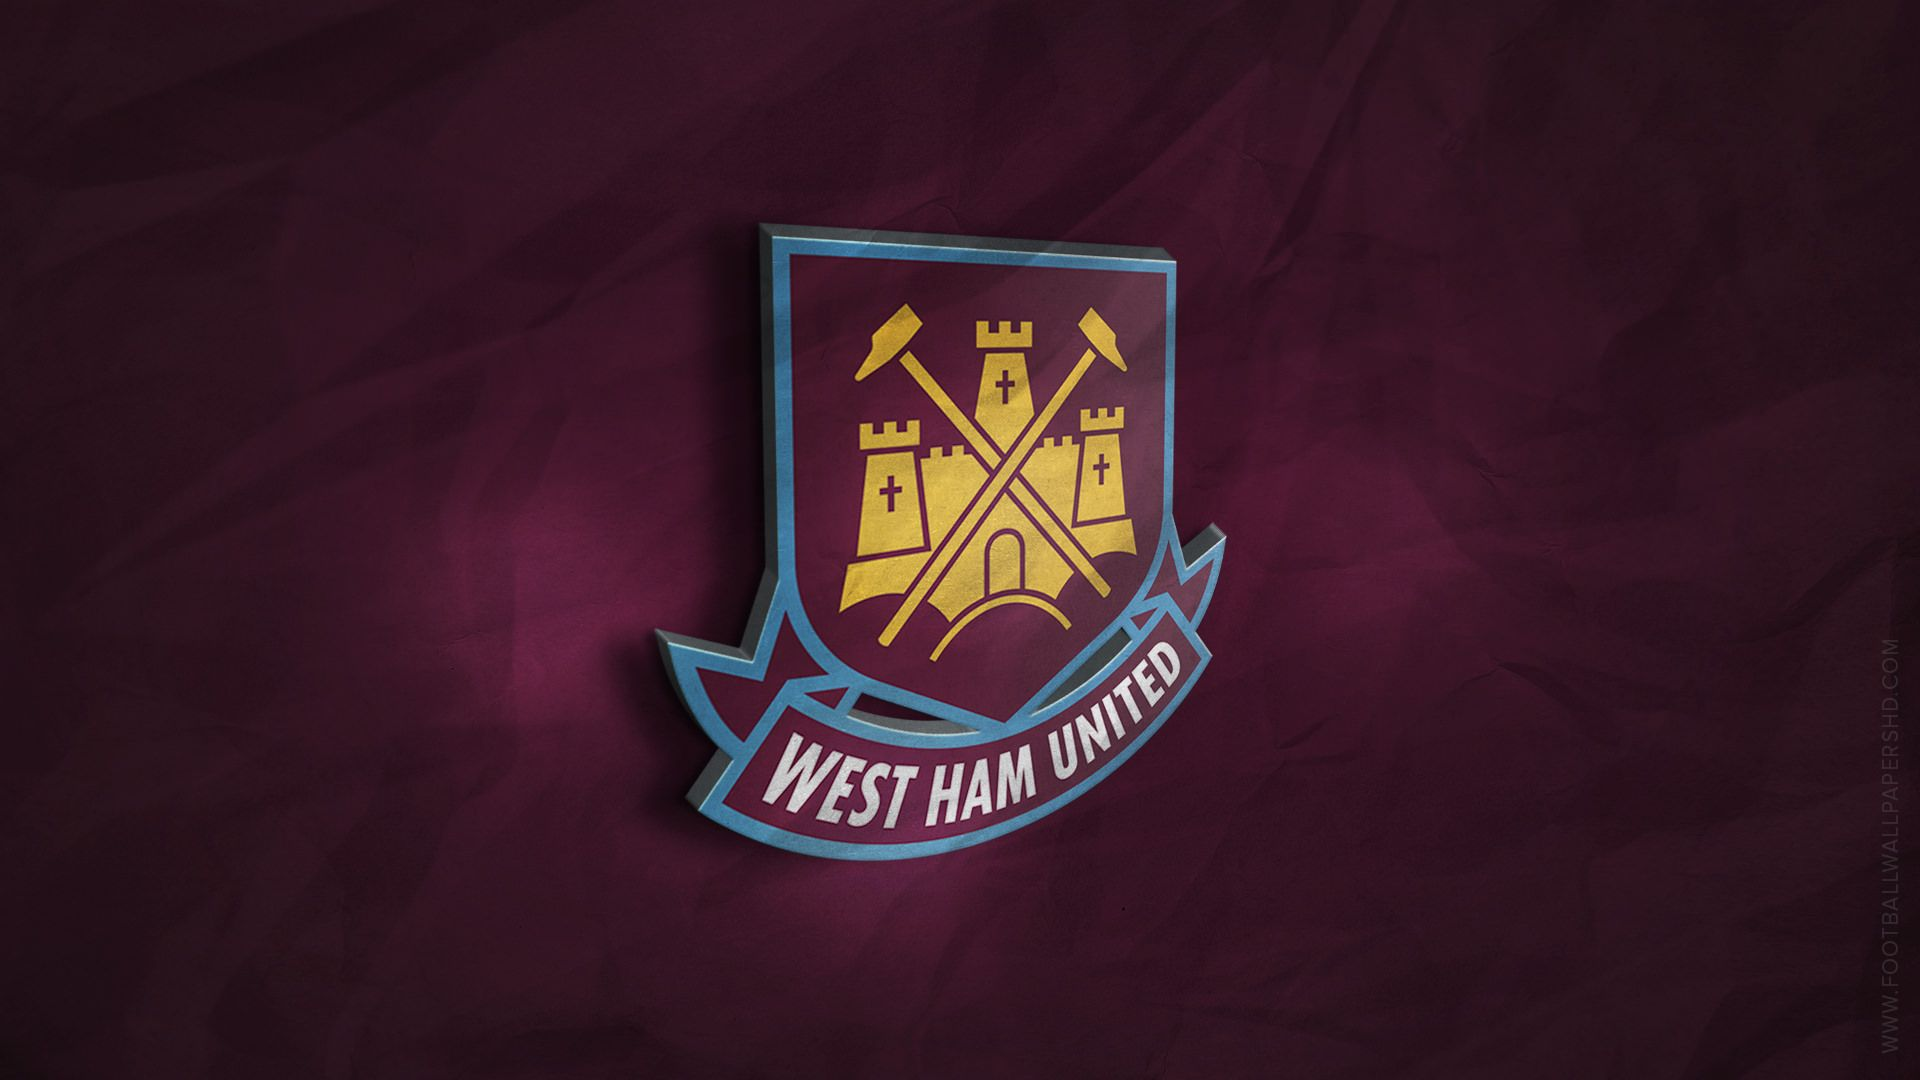 West Ham United 3D Logo Wallpaper | 3d logo, Wallpaper ...